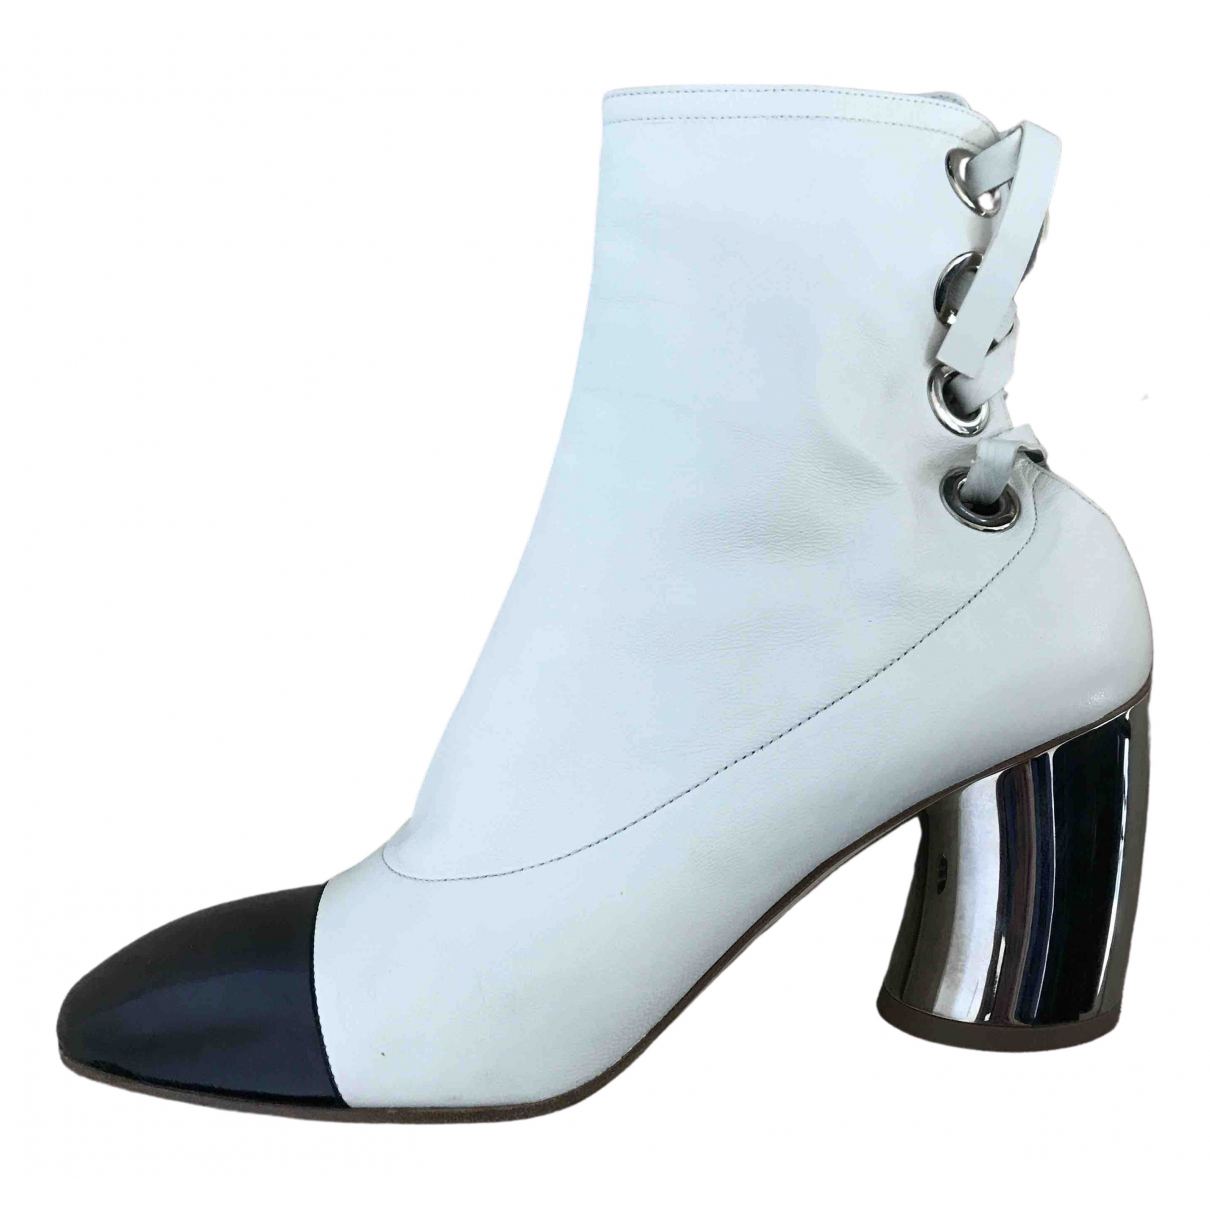 Proenza Schouler \N White Leather Ankle boots for Women 39.5 EU